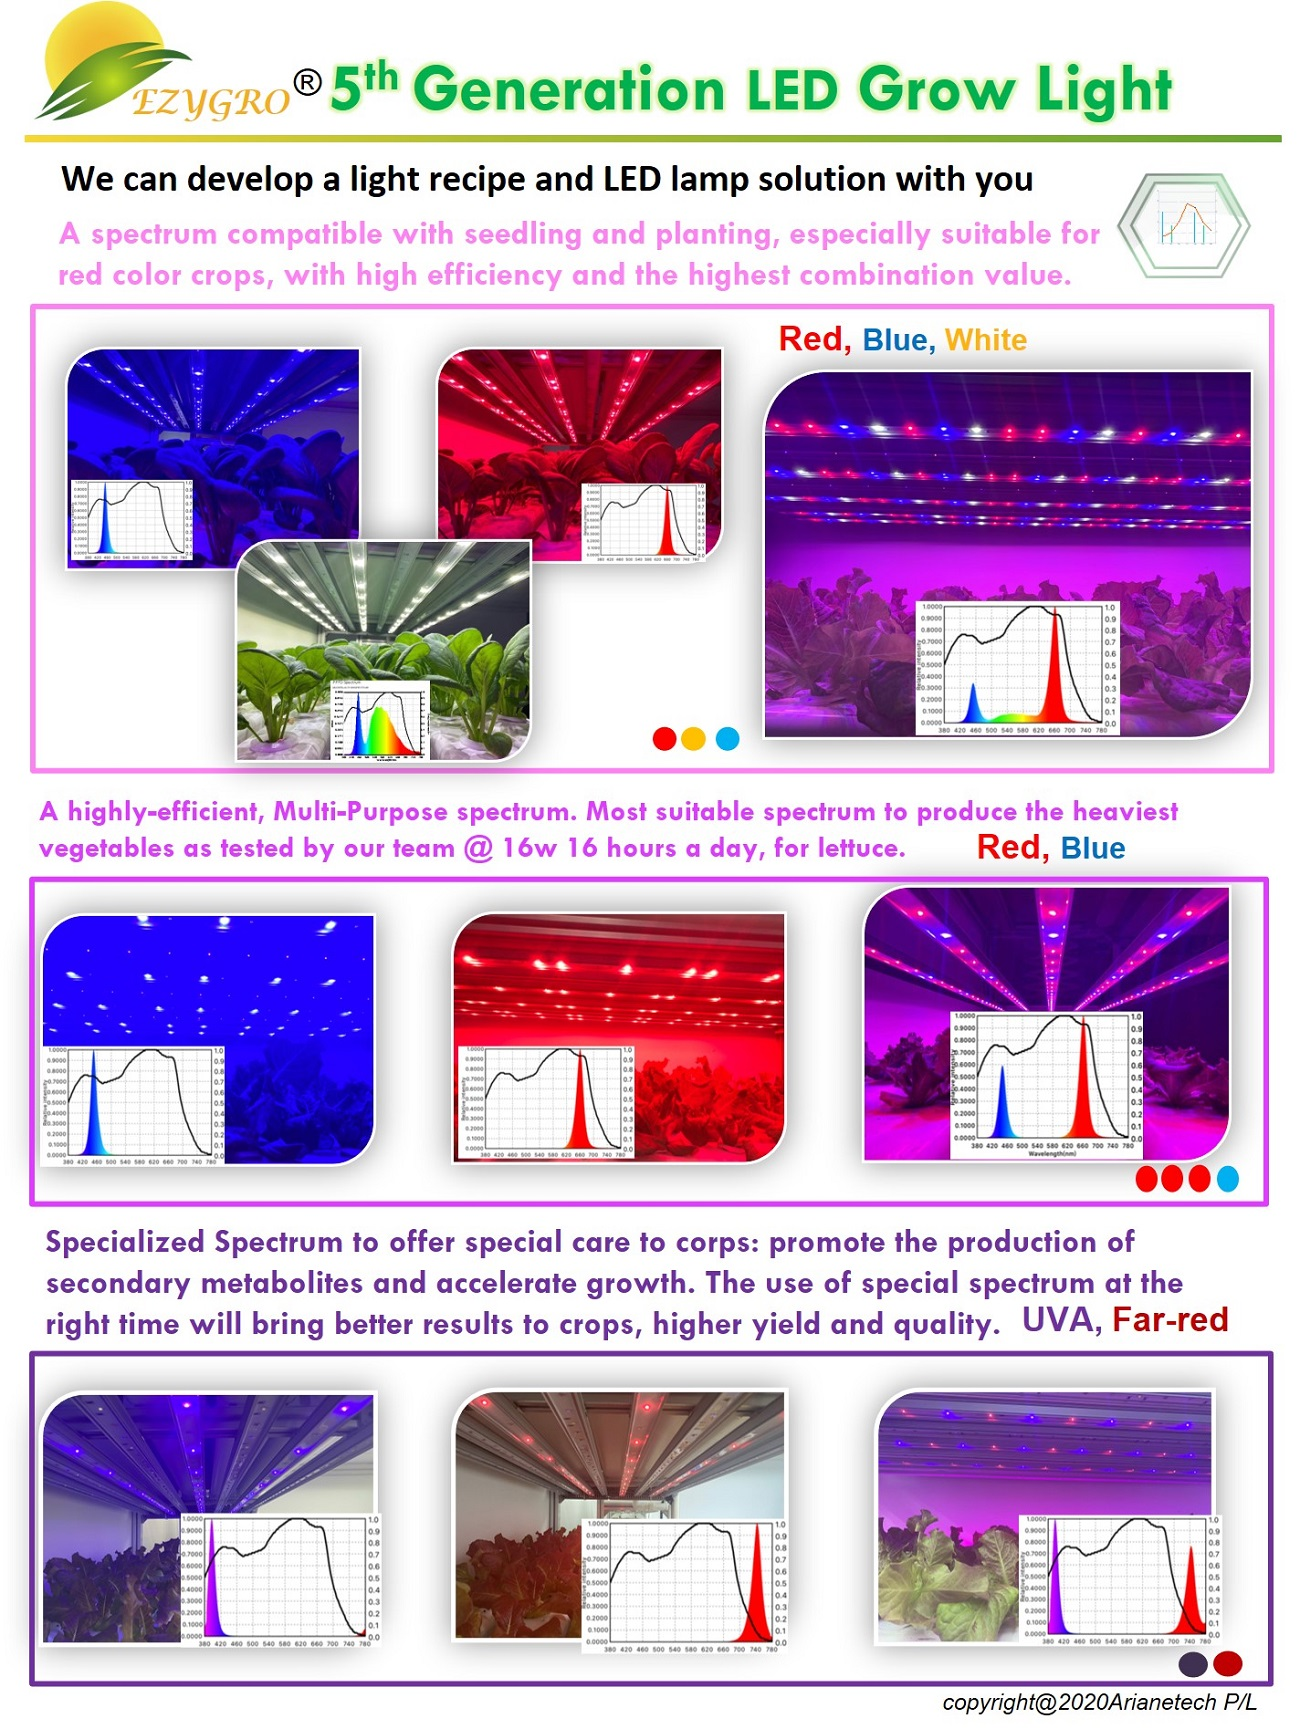 5 generation ezygro led grow light bar for crops in vertical farming 10